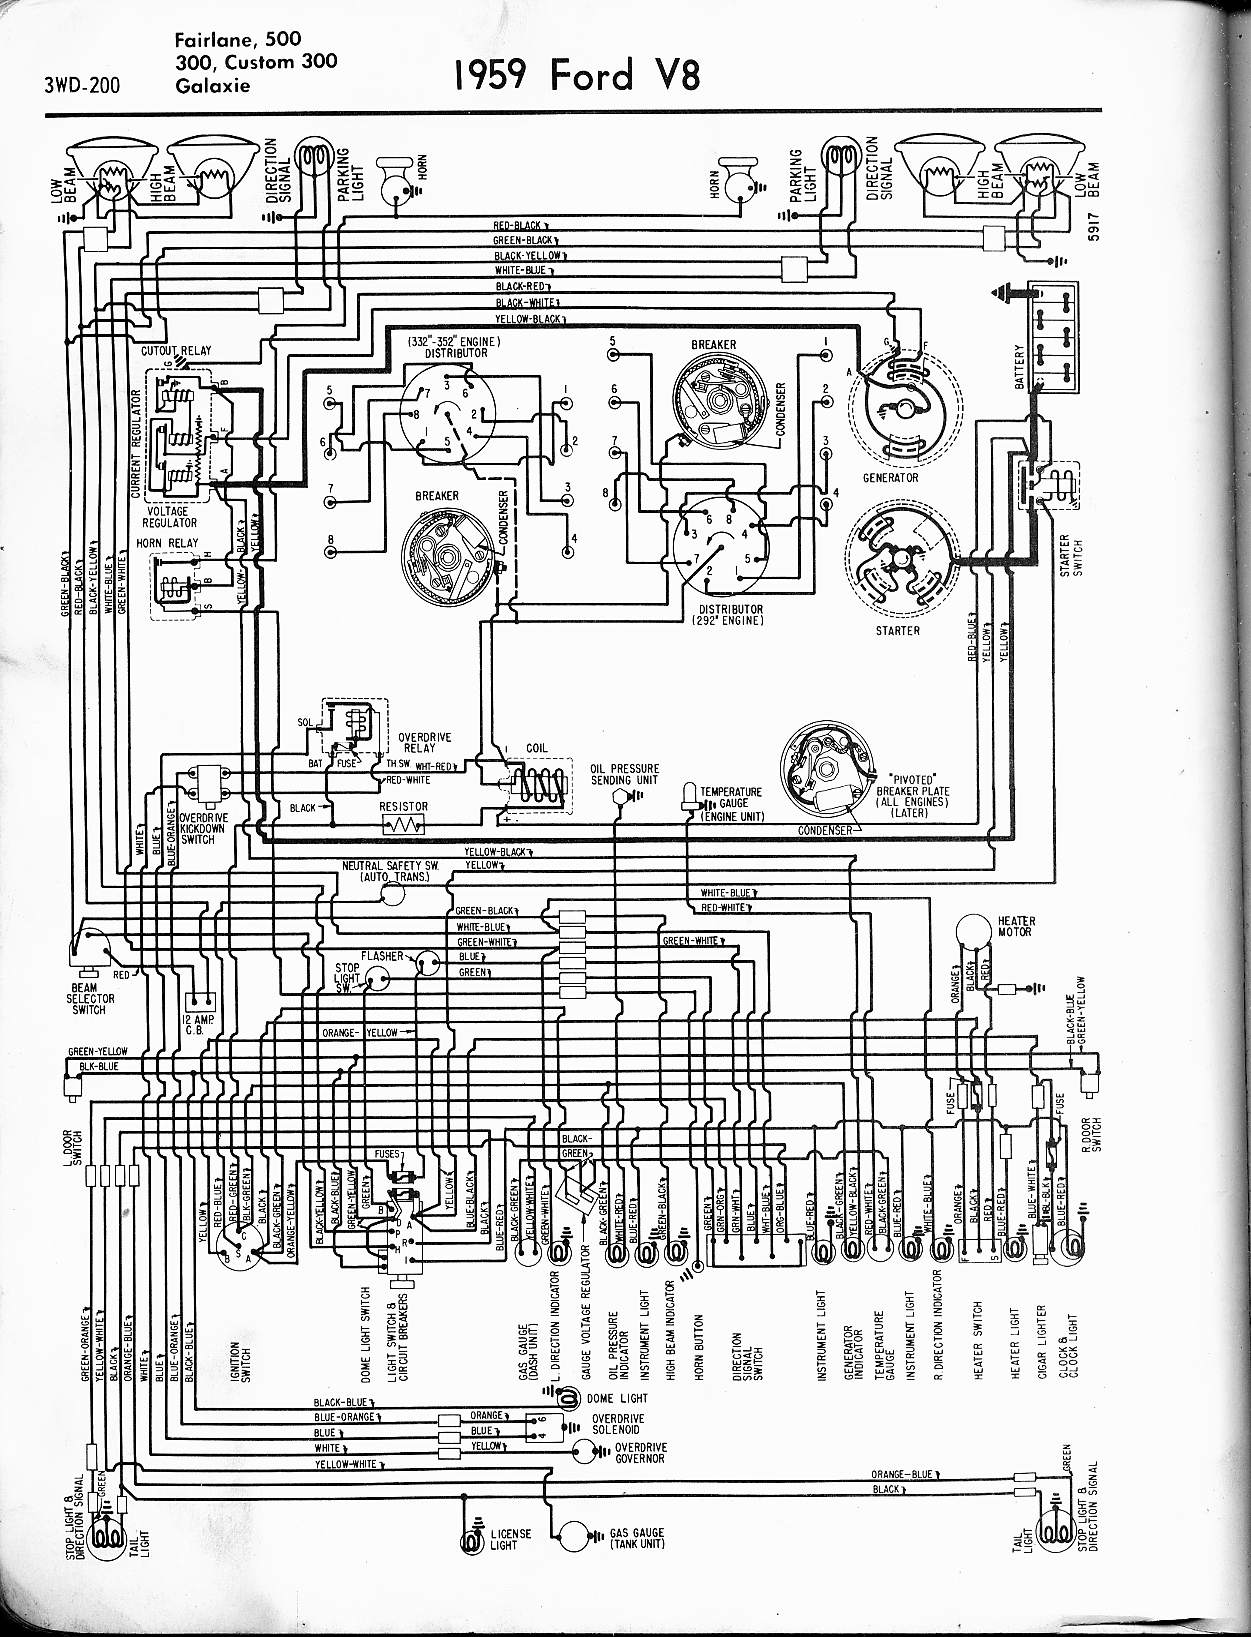 MWire5765 200 57 65 ford wiring diagrams ford wiring schematics at virtualis.co